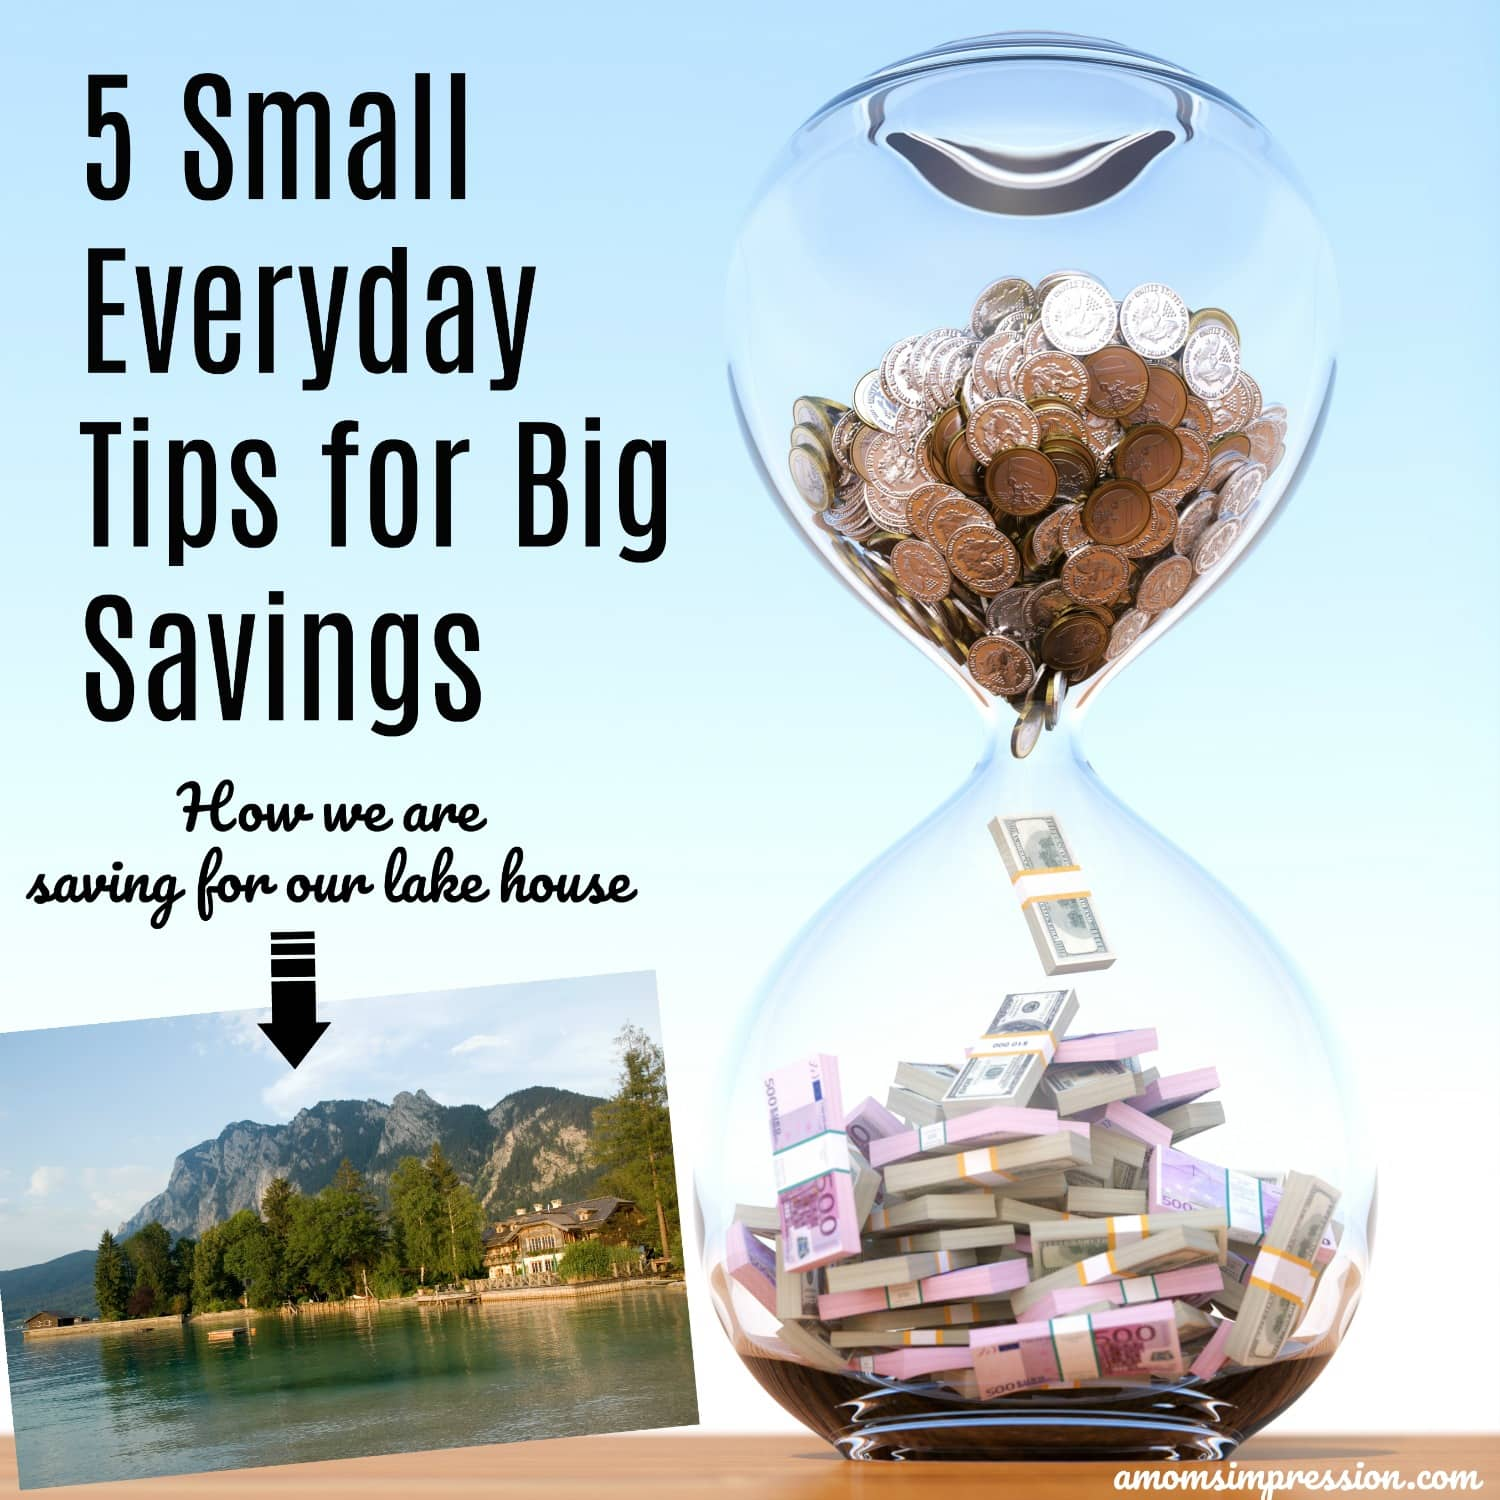 5 Small Everyday Tips for Big Savings